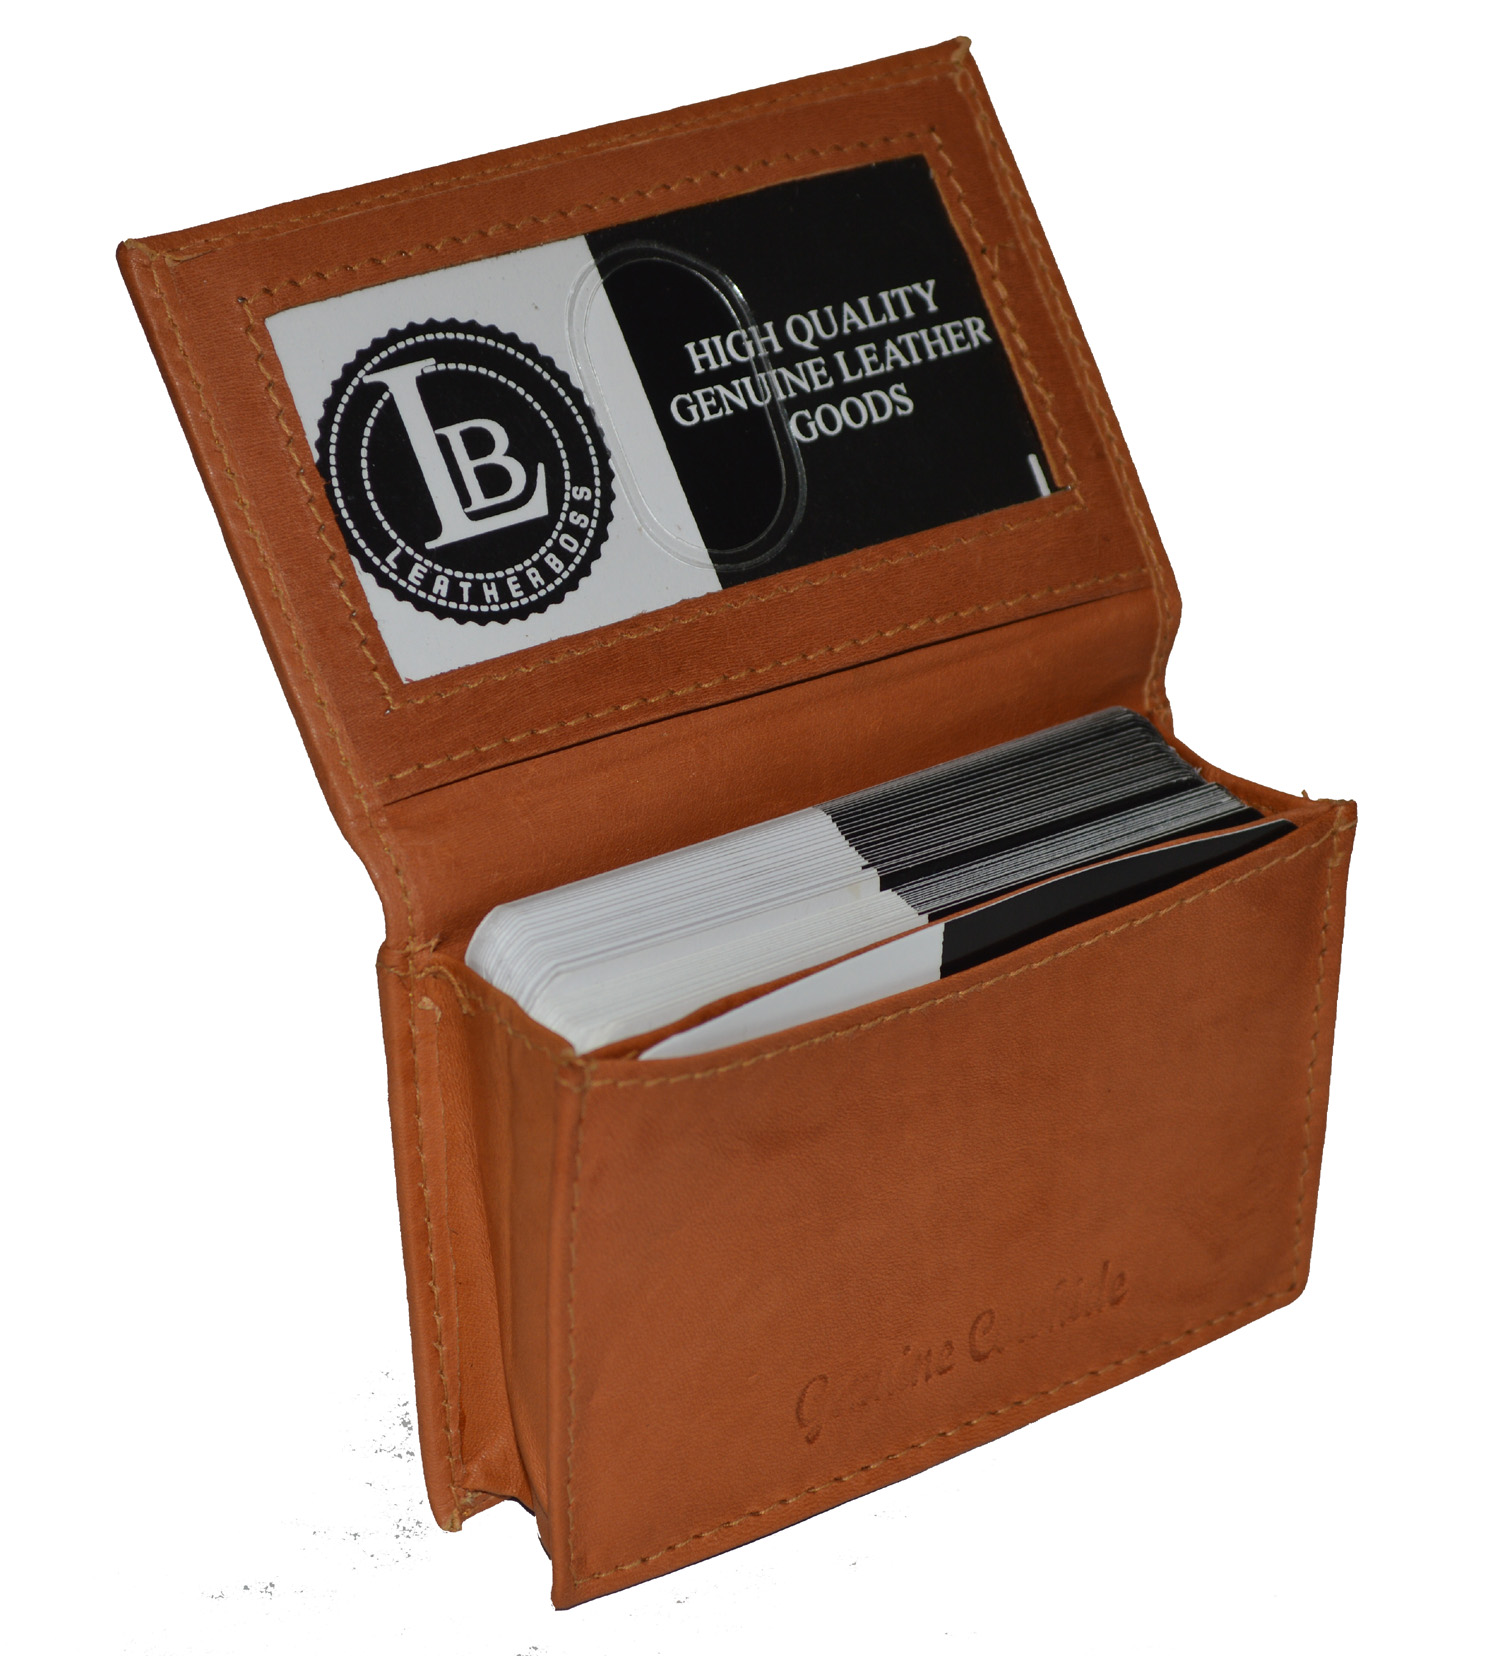 BUSINESS CARD ID HOLDER MONEY EXPANDABLE Pocket by Leatherboss